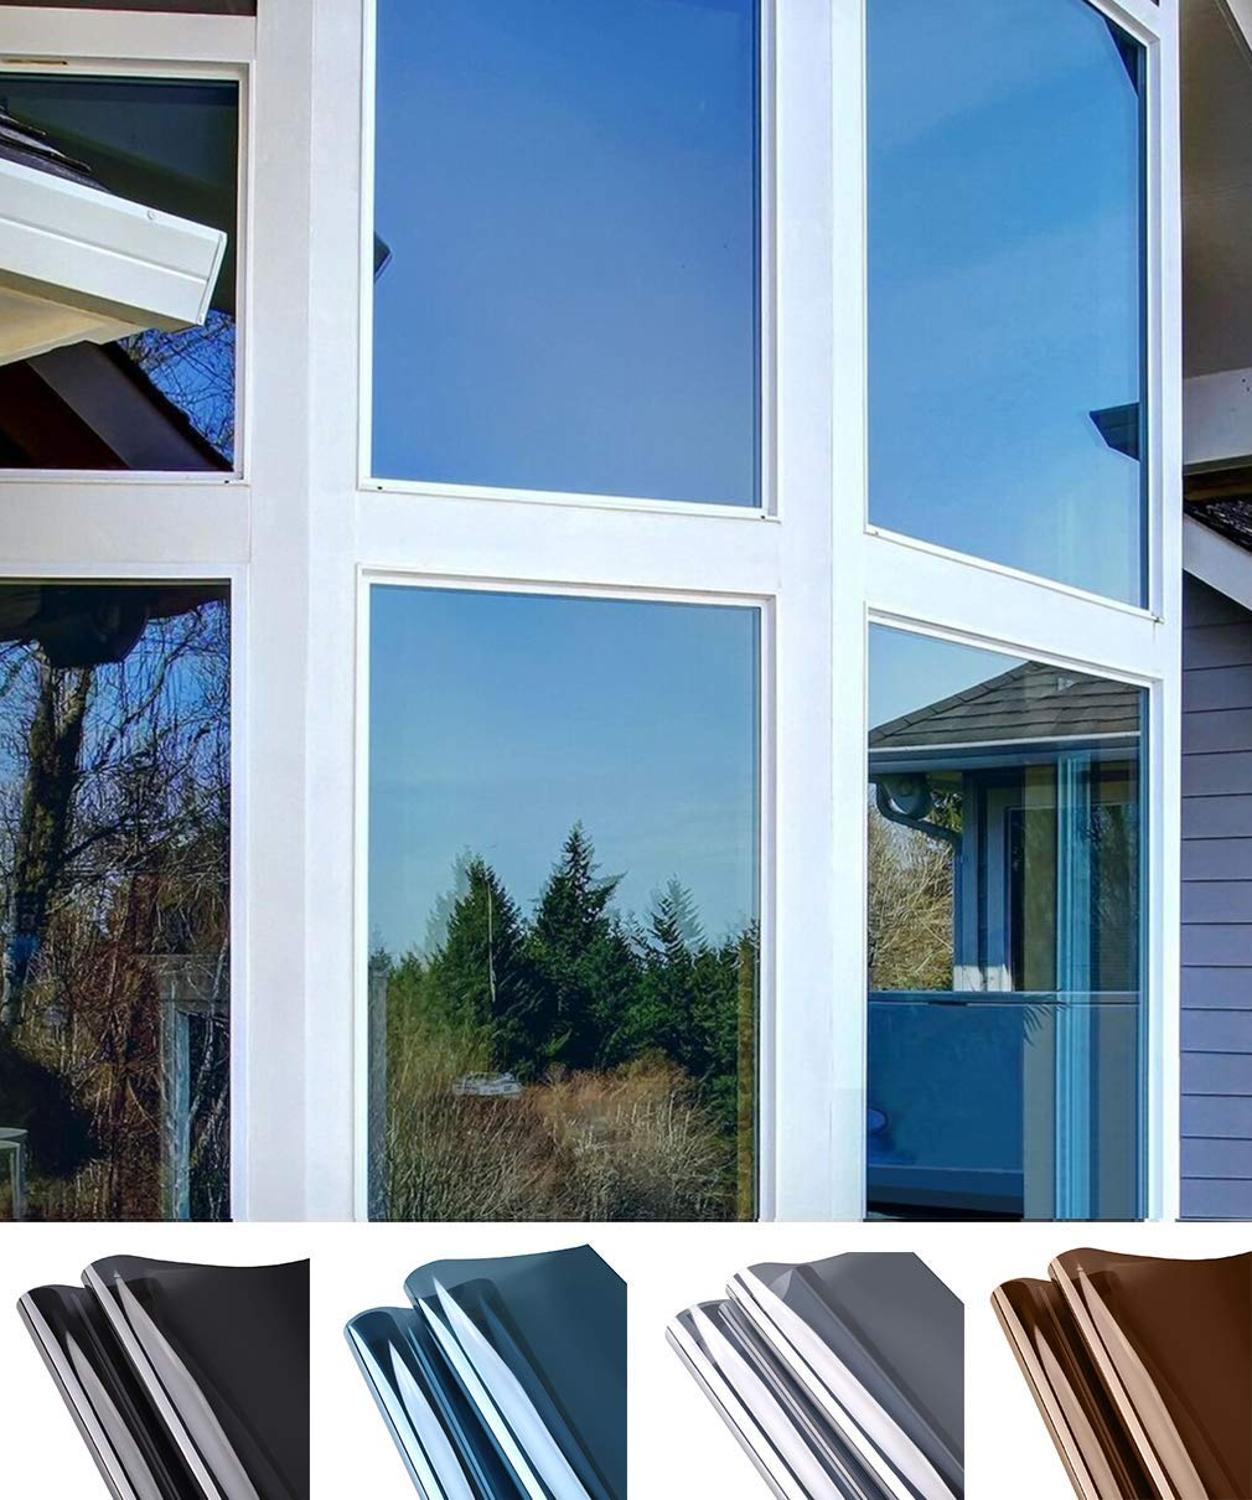 Window Privacy Film Sun Blocking Mirror Reflective Tint One Way, Heat Control Vinyl Anti UV Window Stickers for Home and Office